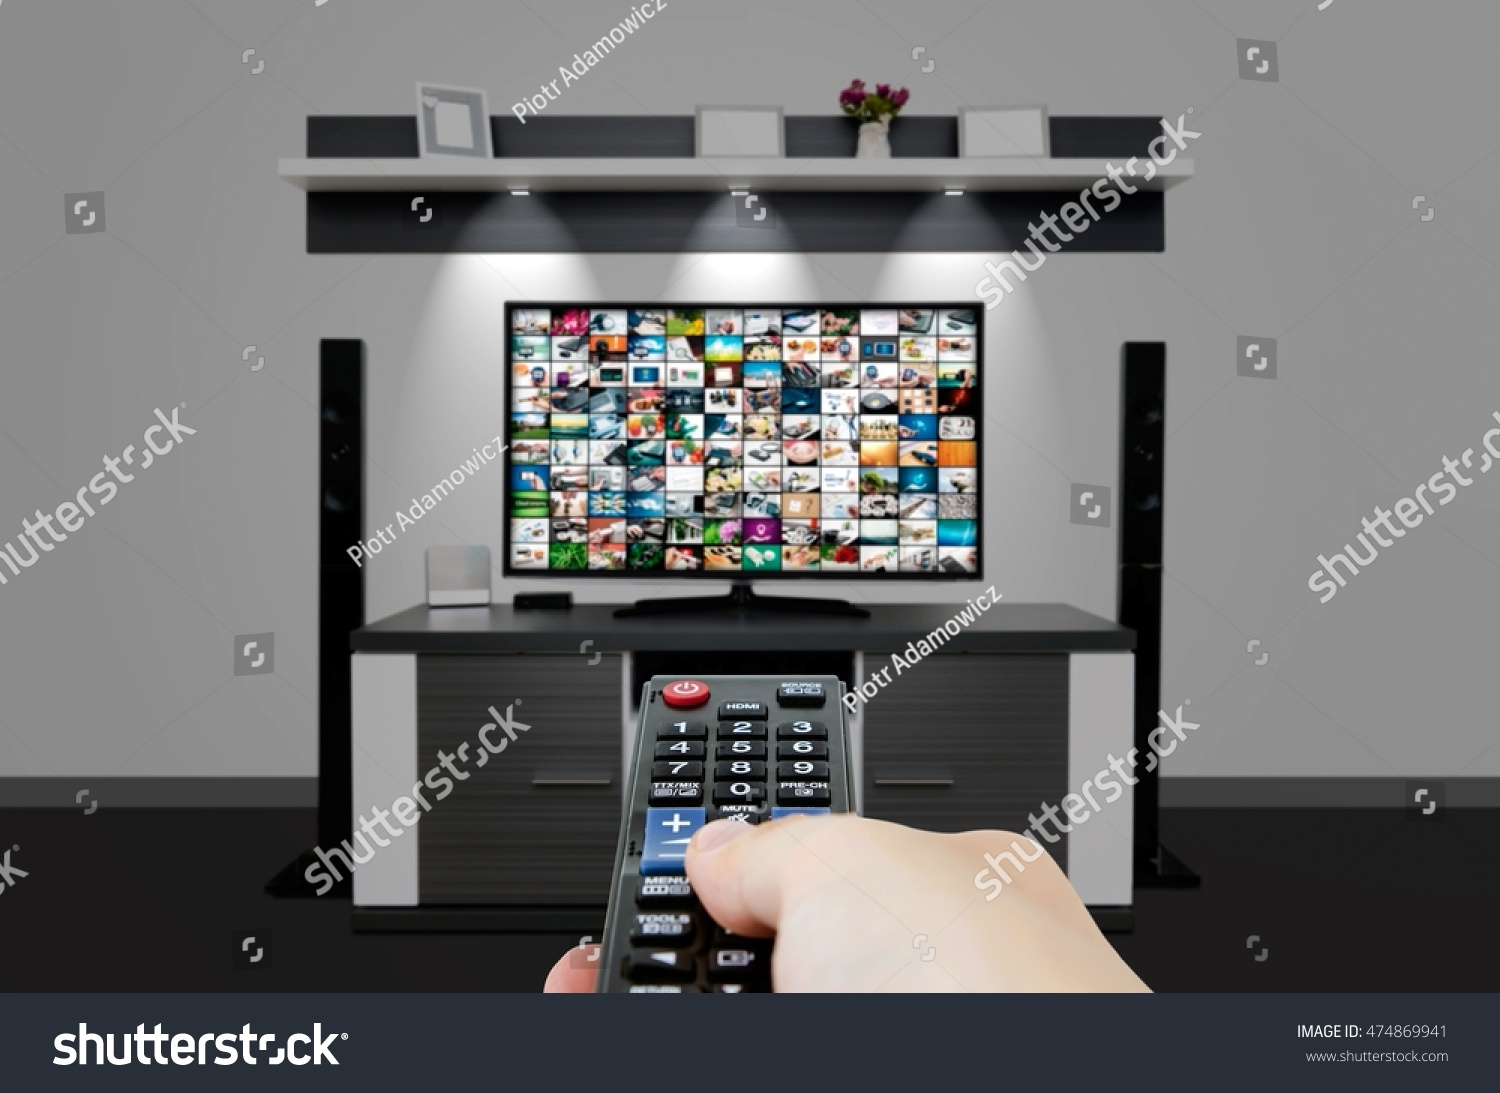 Watching television in modern TV room Hand holding remote control